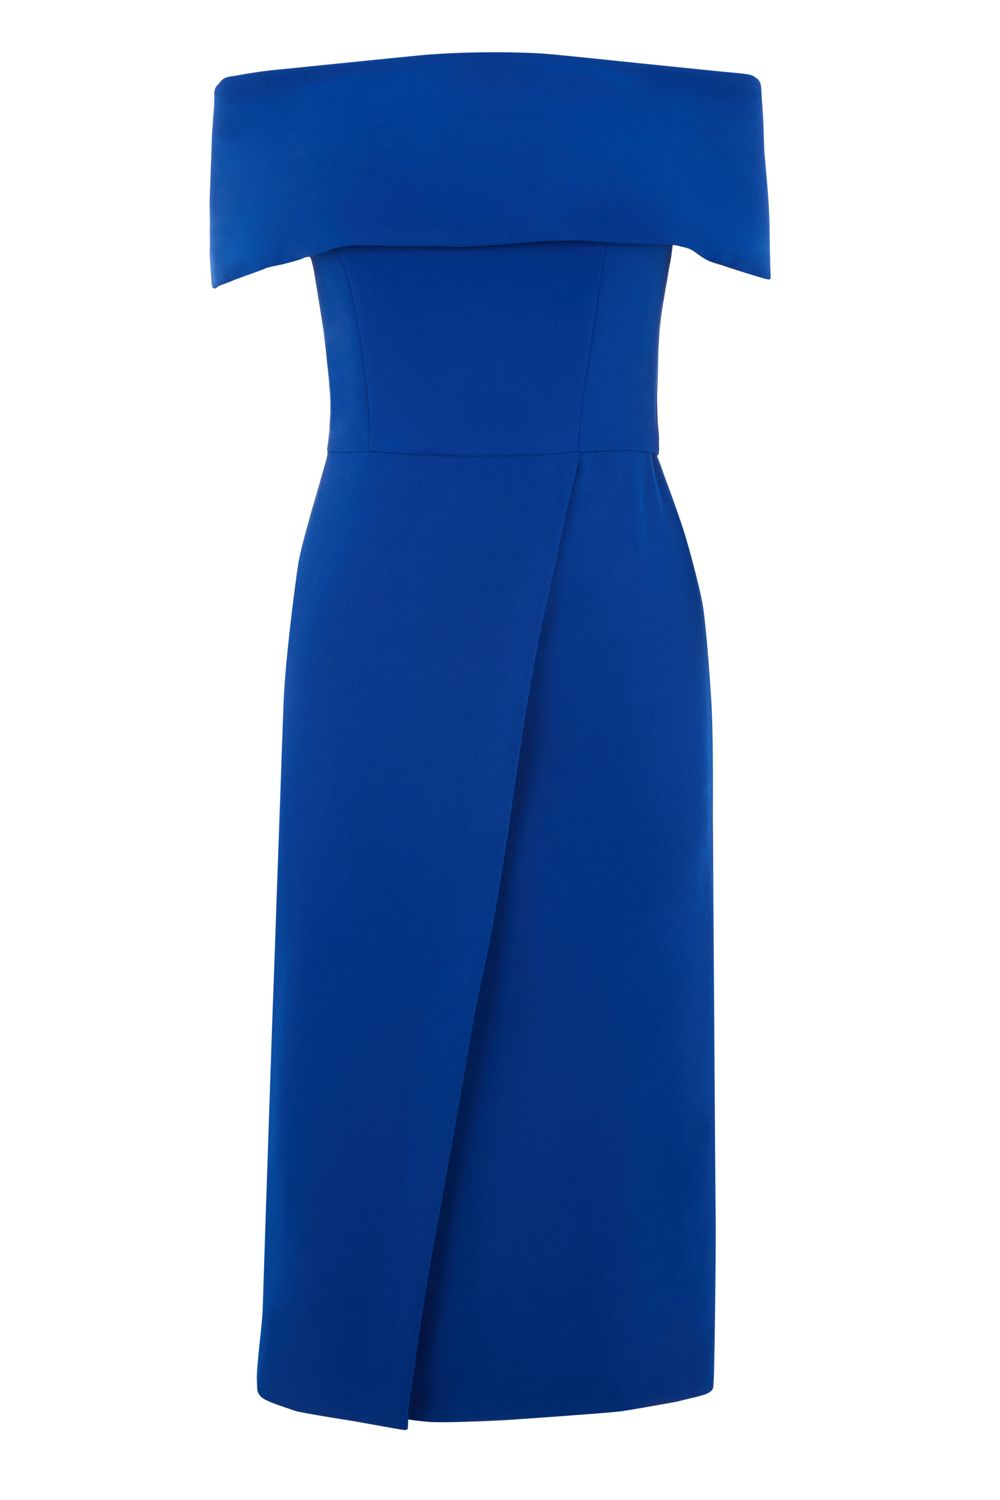 Oasis Bardot Pencil Dress, Cobalt